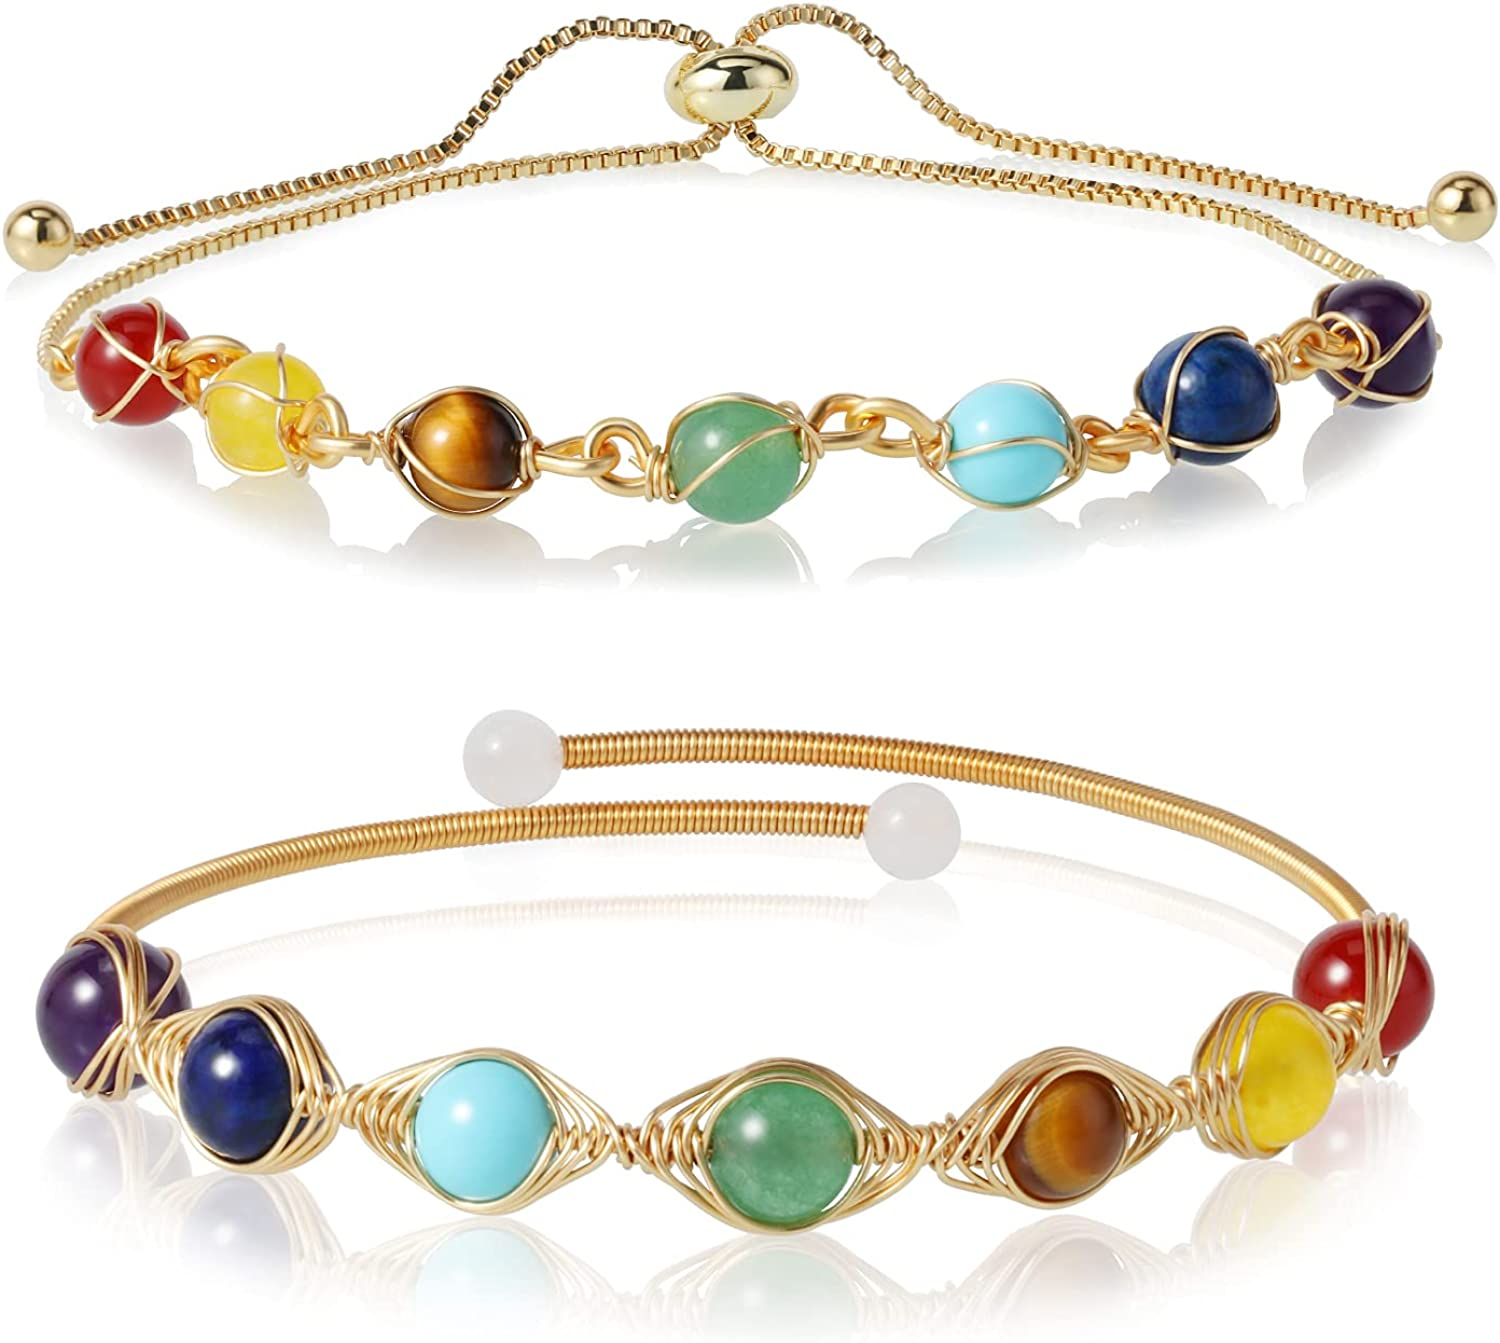 2 Pcs Healing Crystal Bracelet for Women Girls 7 Chakra Cuff Bead Bracelet with 14K Gold Plated Adjustable Wire